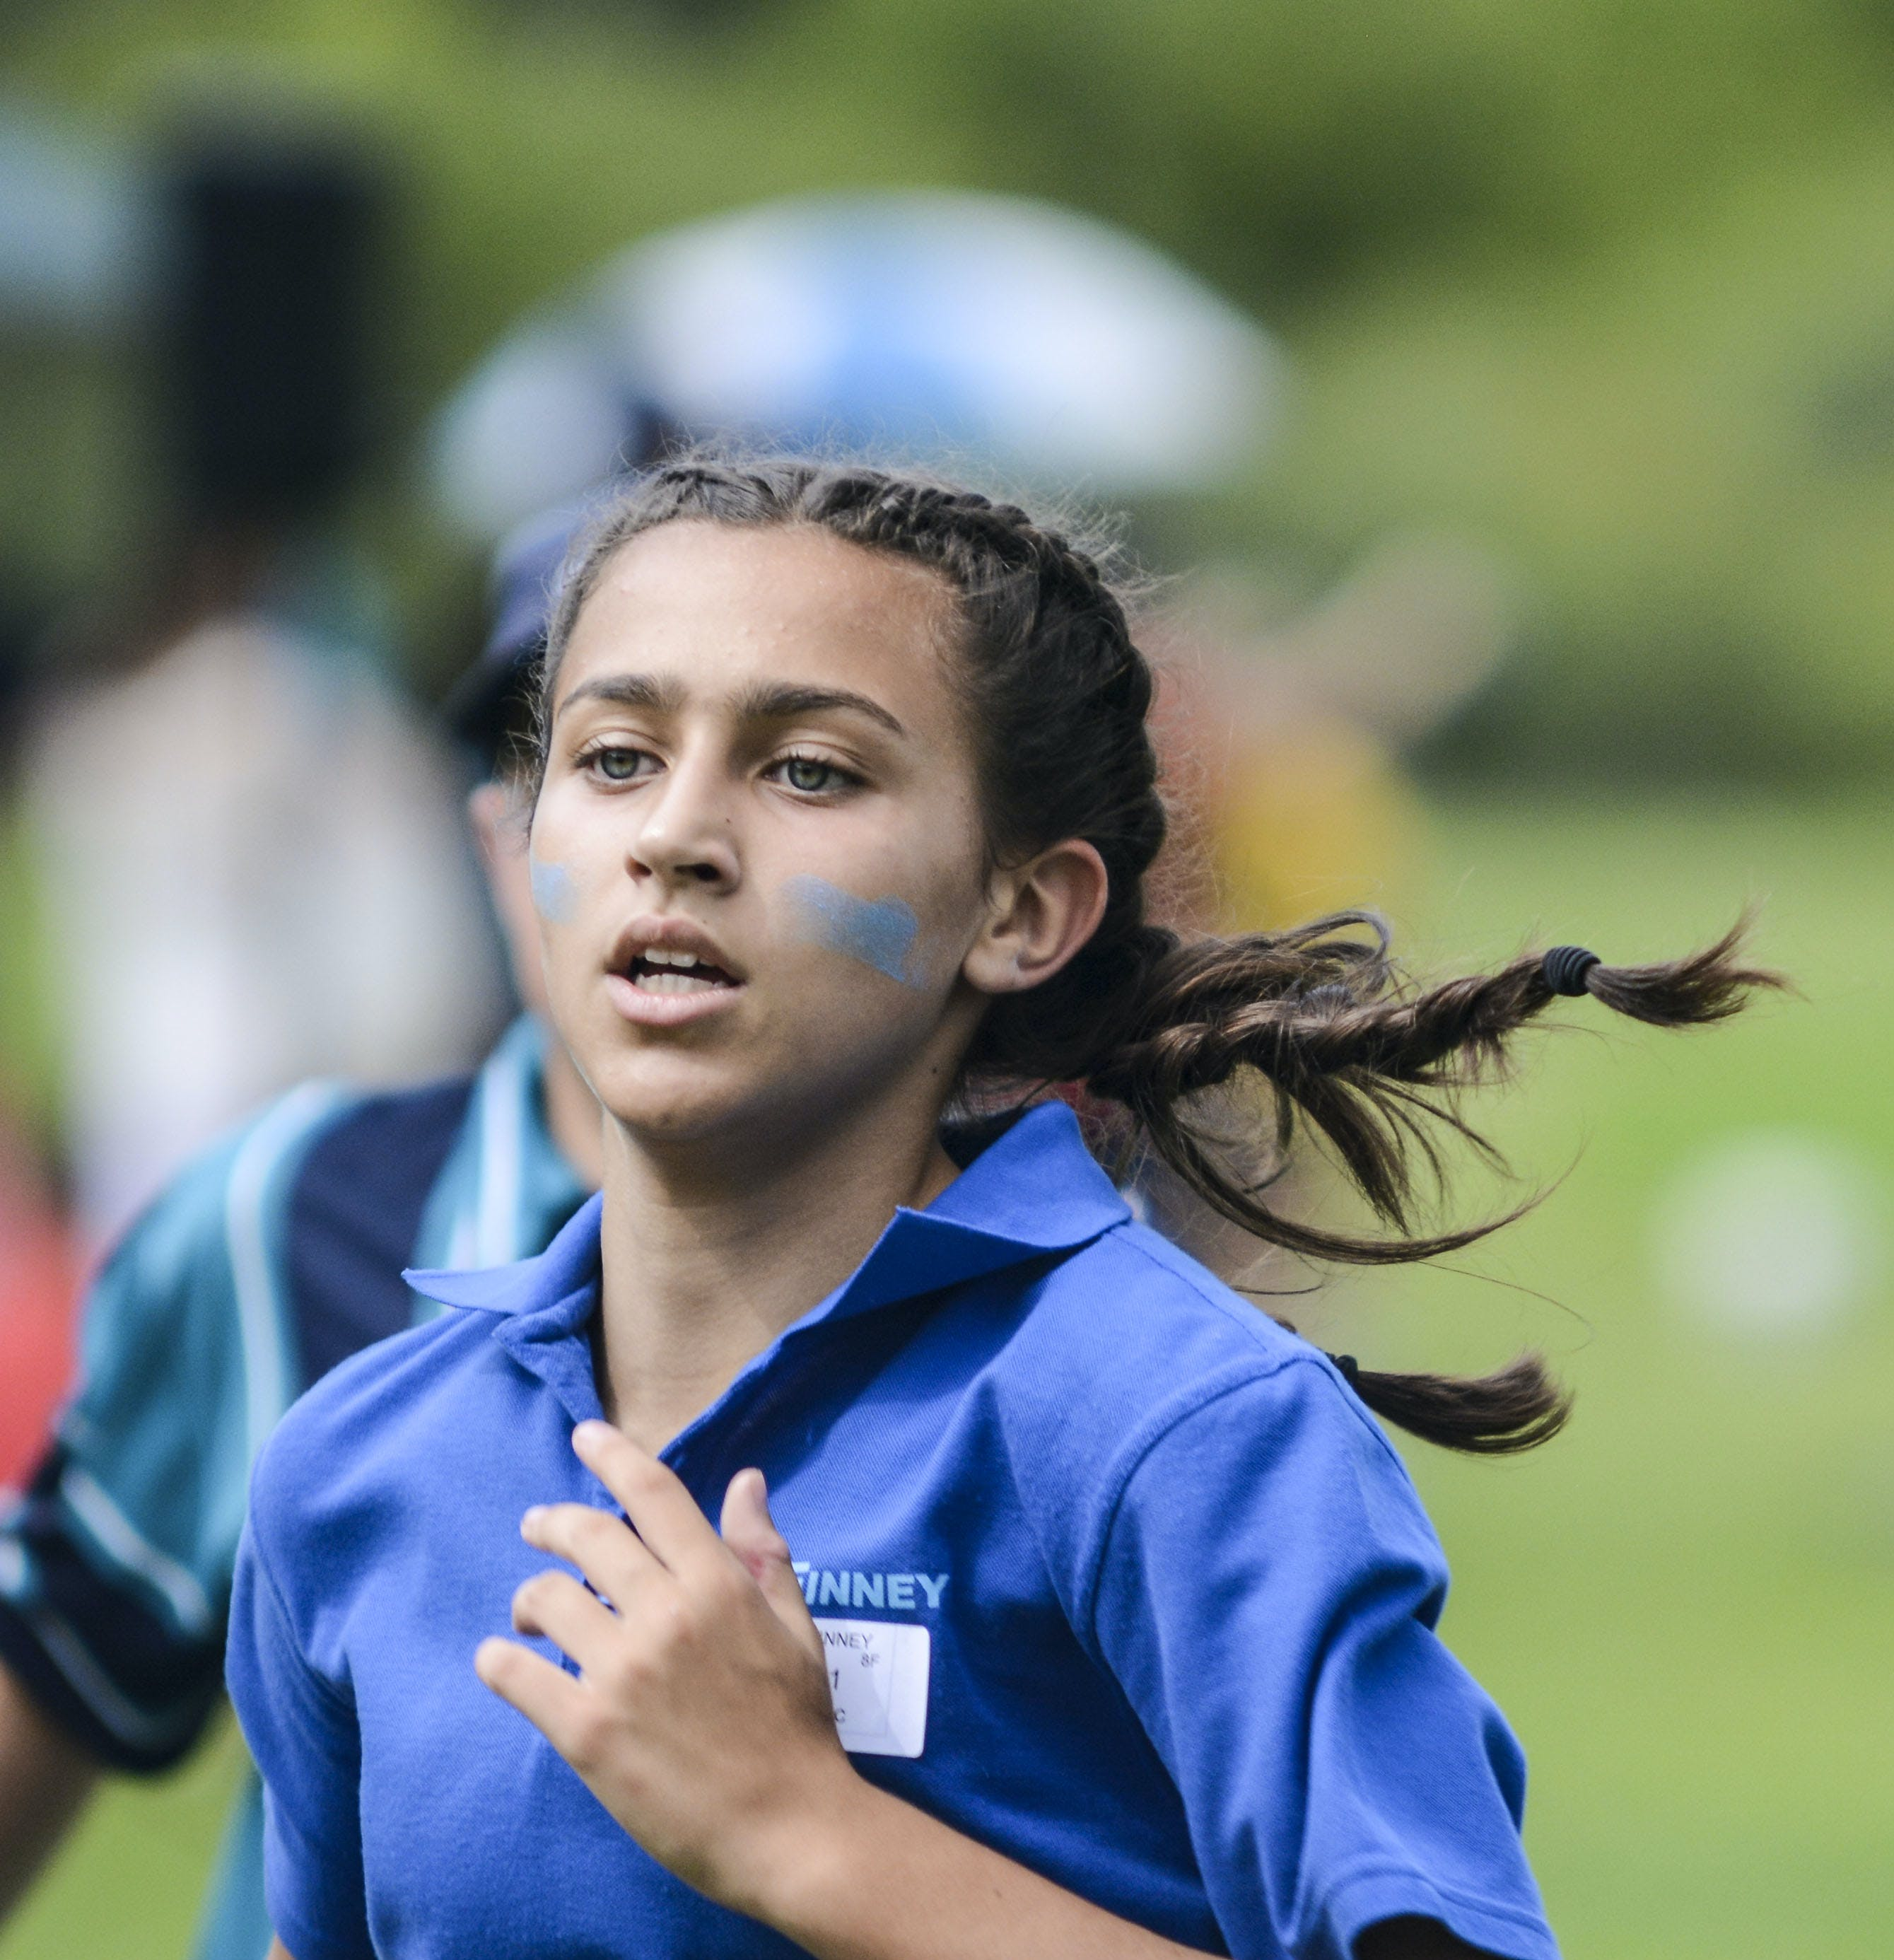 Girl in Blue Polo Shirt Running